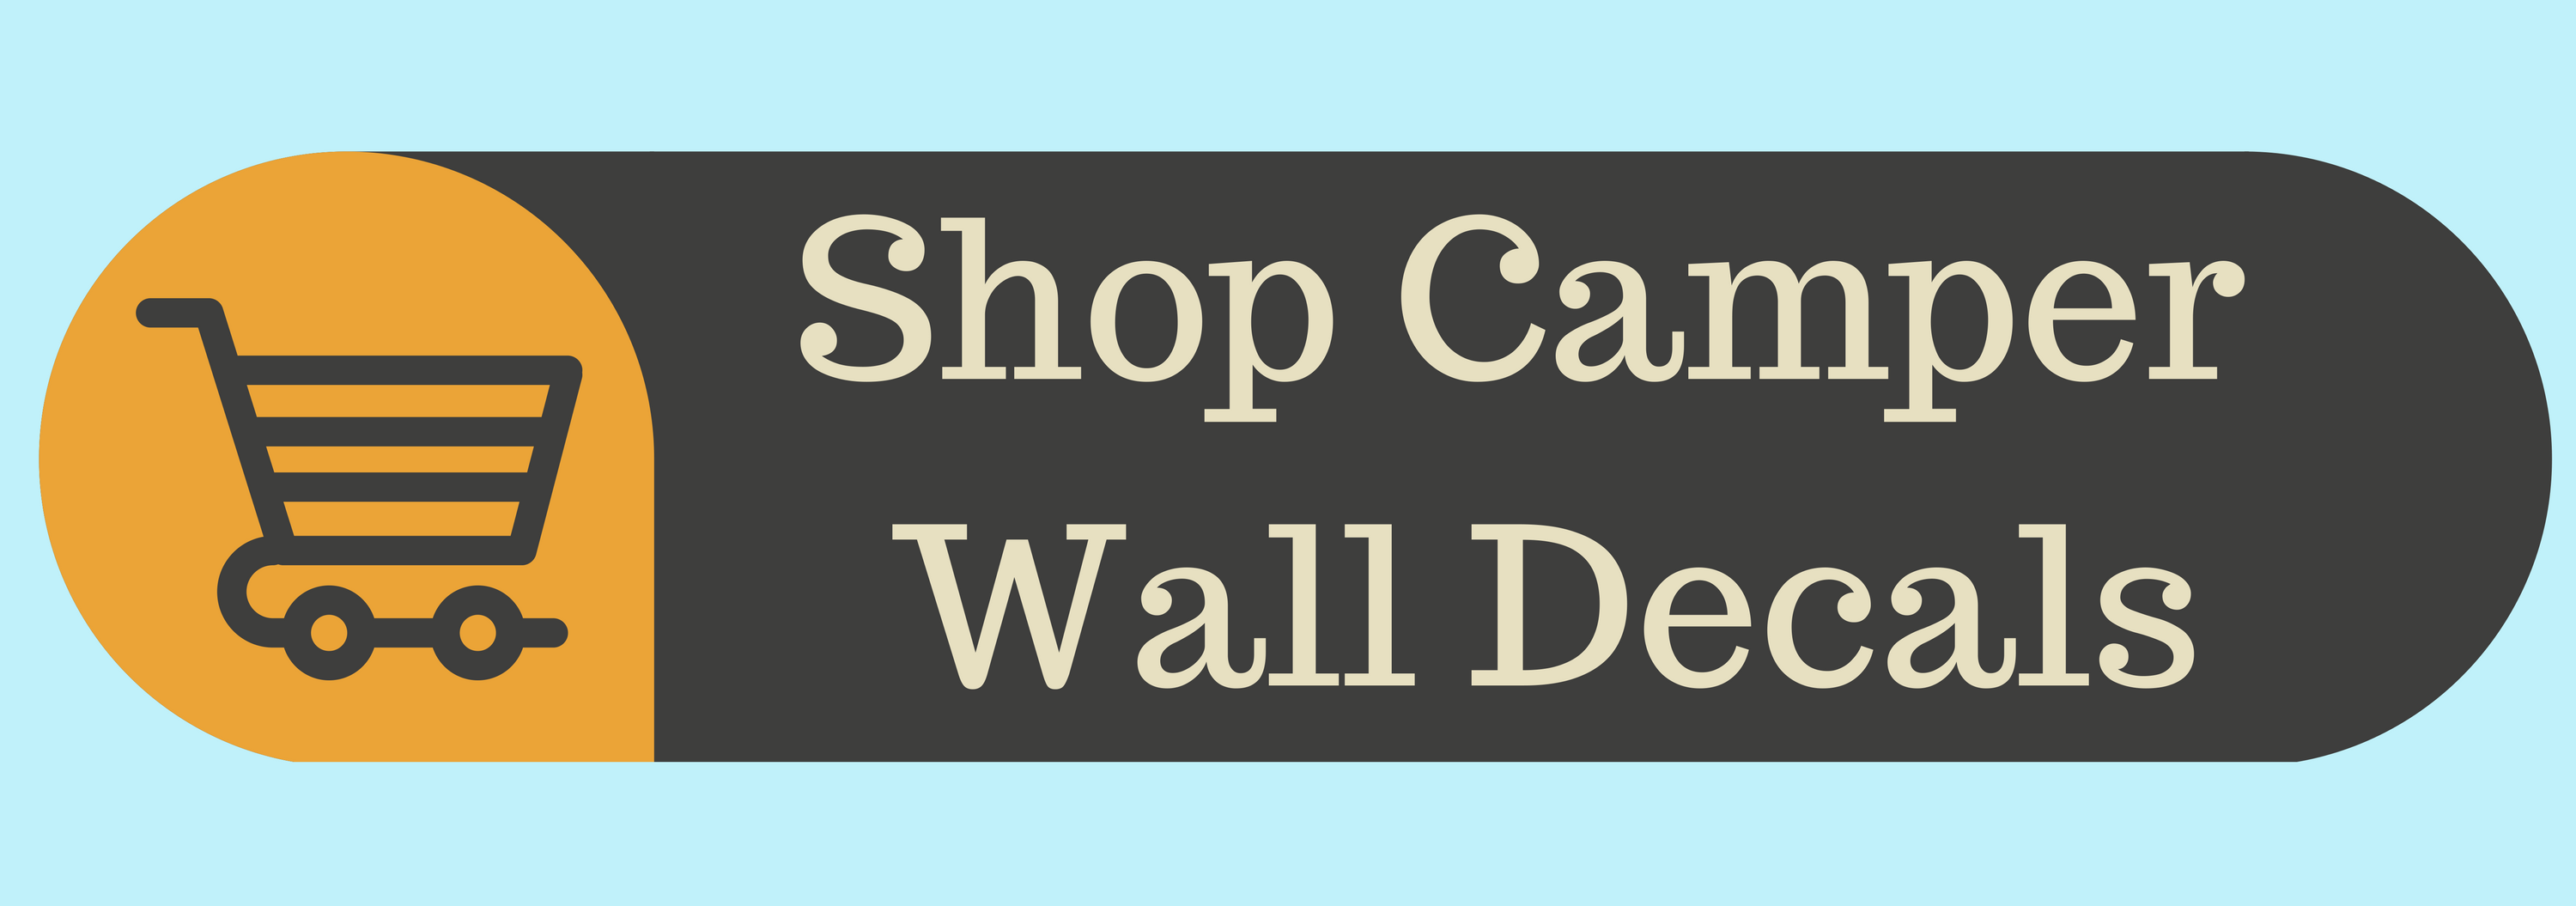 Shop Camper Wall Decals and Vinyl Stickers